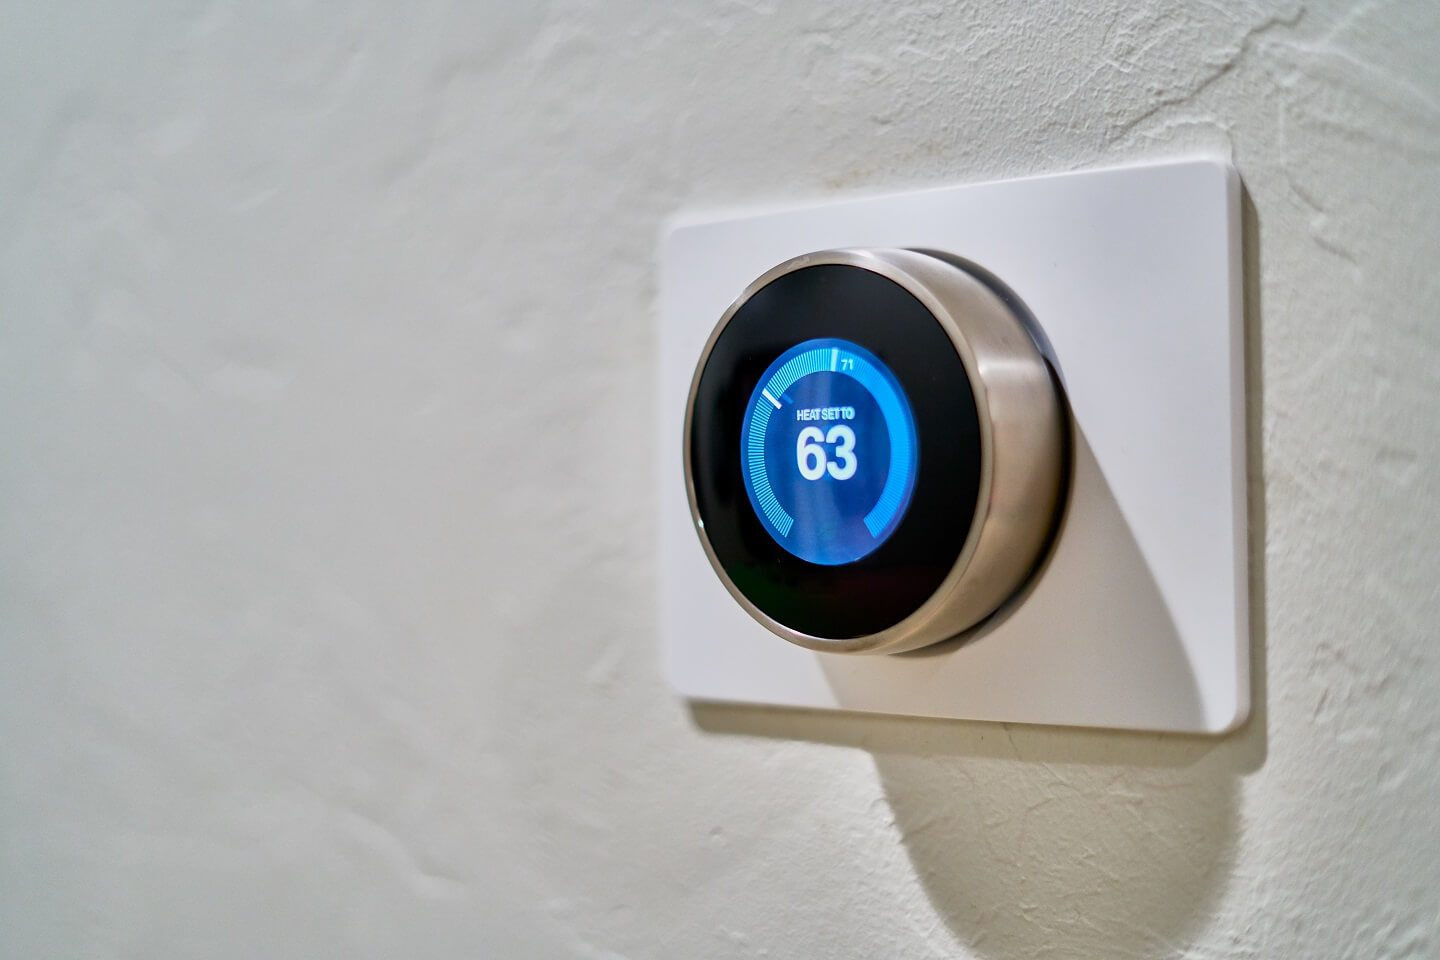 A high quality Nest Learning Thermostat installed and on the wall